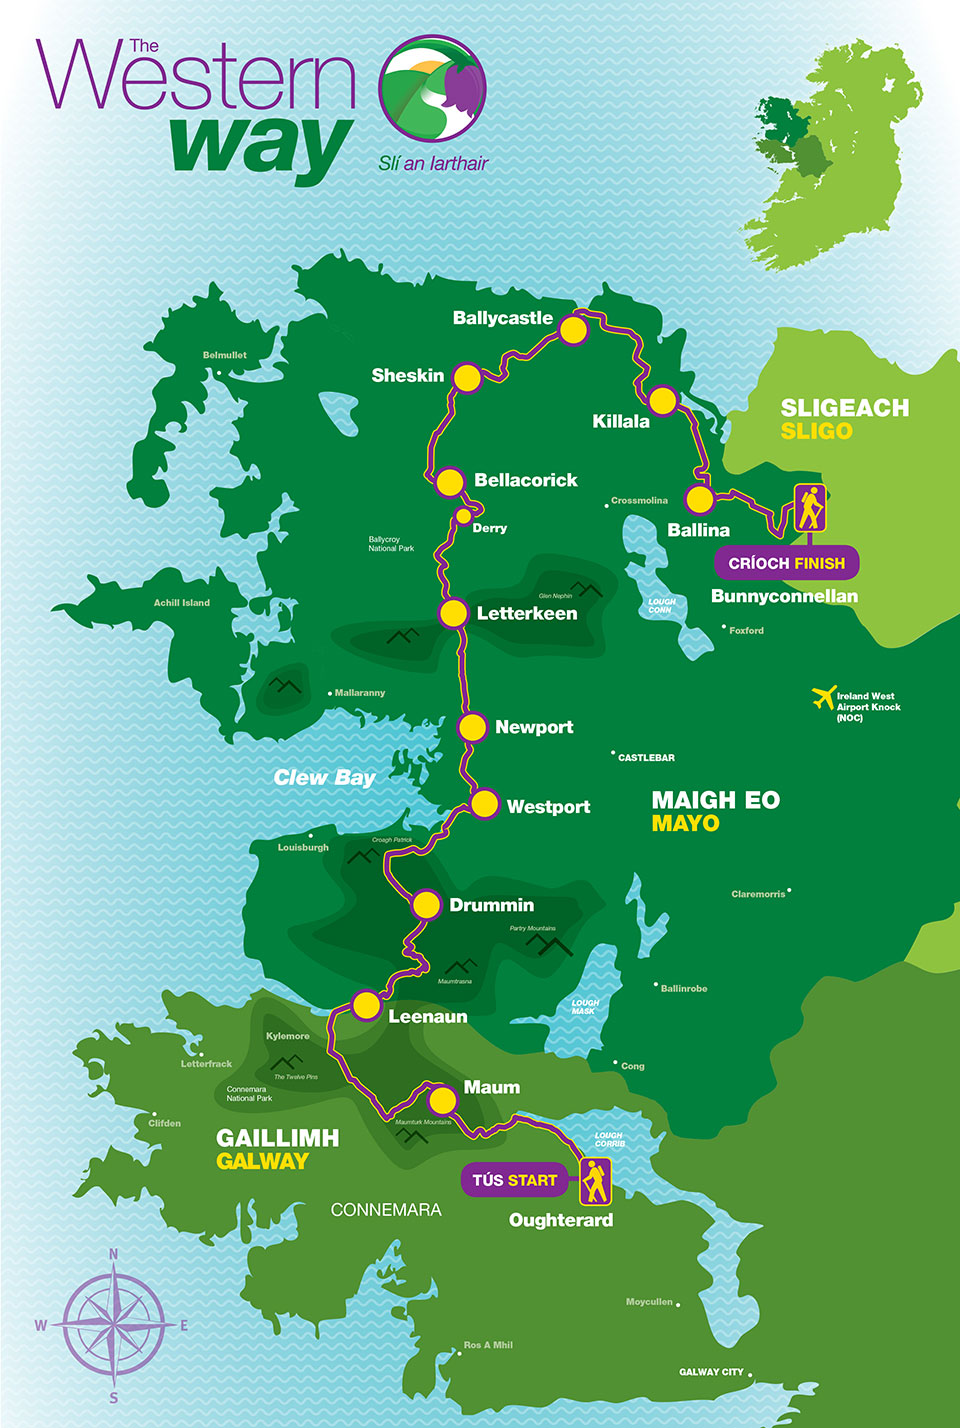 Map Of The West Of Ireland.Trail Sections Map The Western Way West Of Ireland The